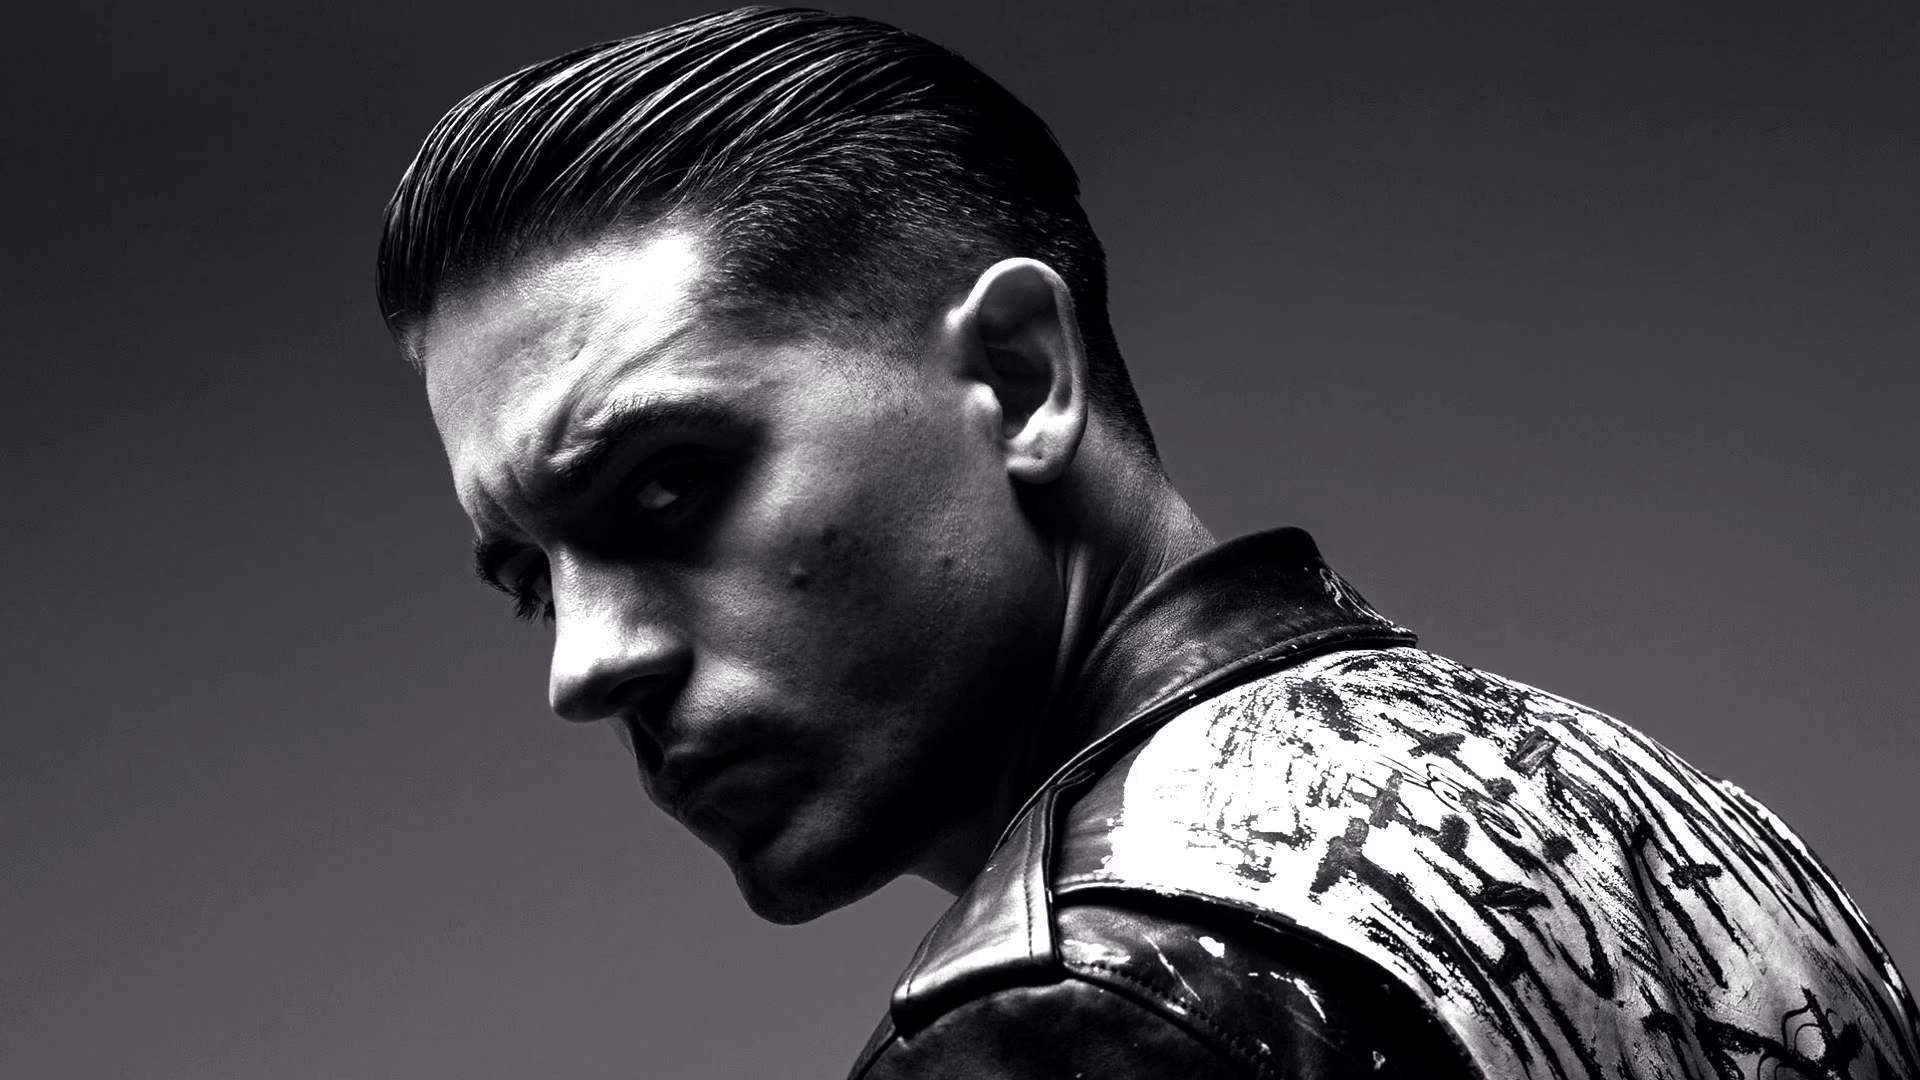 G Eazy Wallpapers Hd